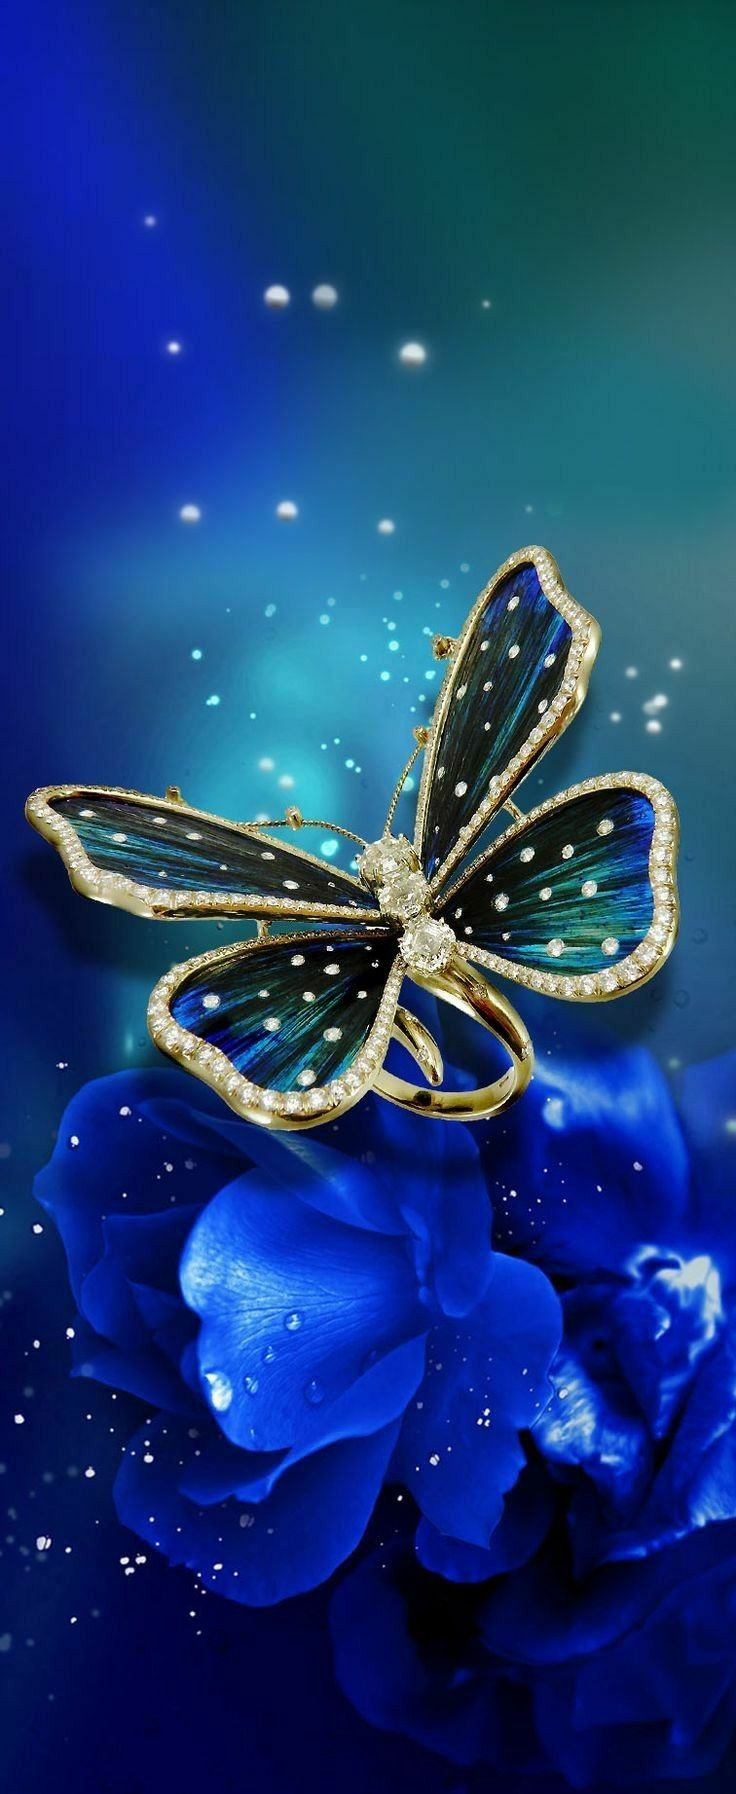 Pin on Butterfly Charly